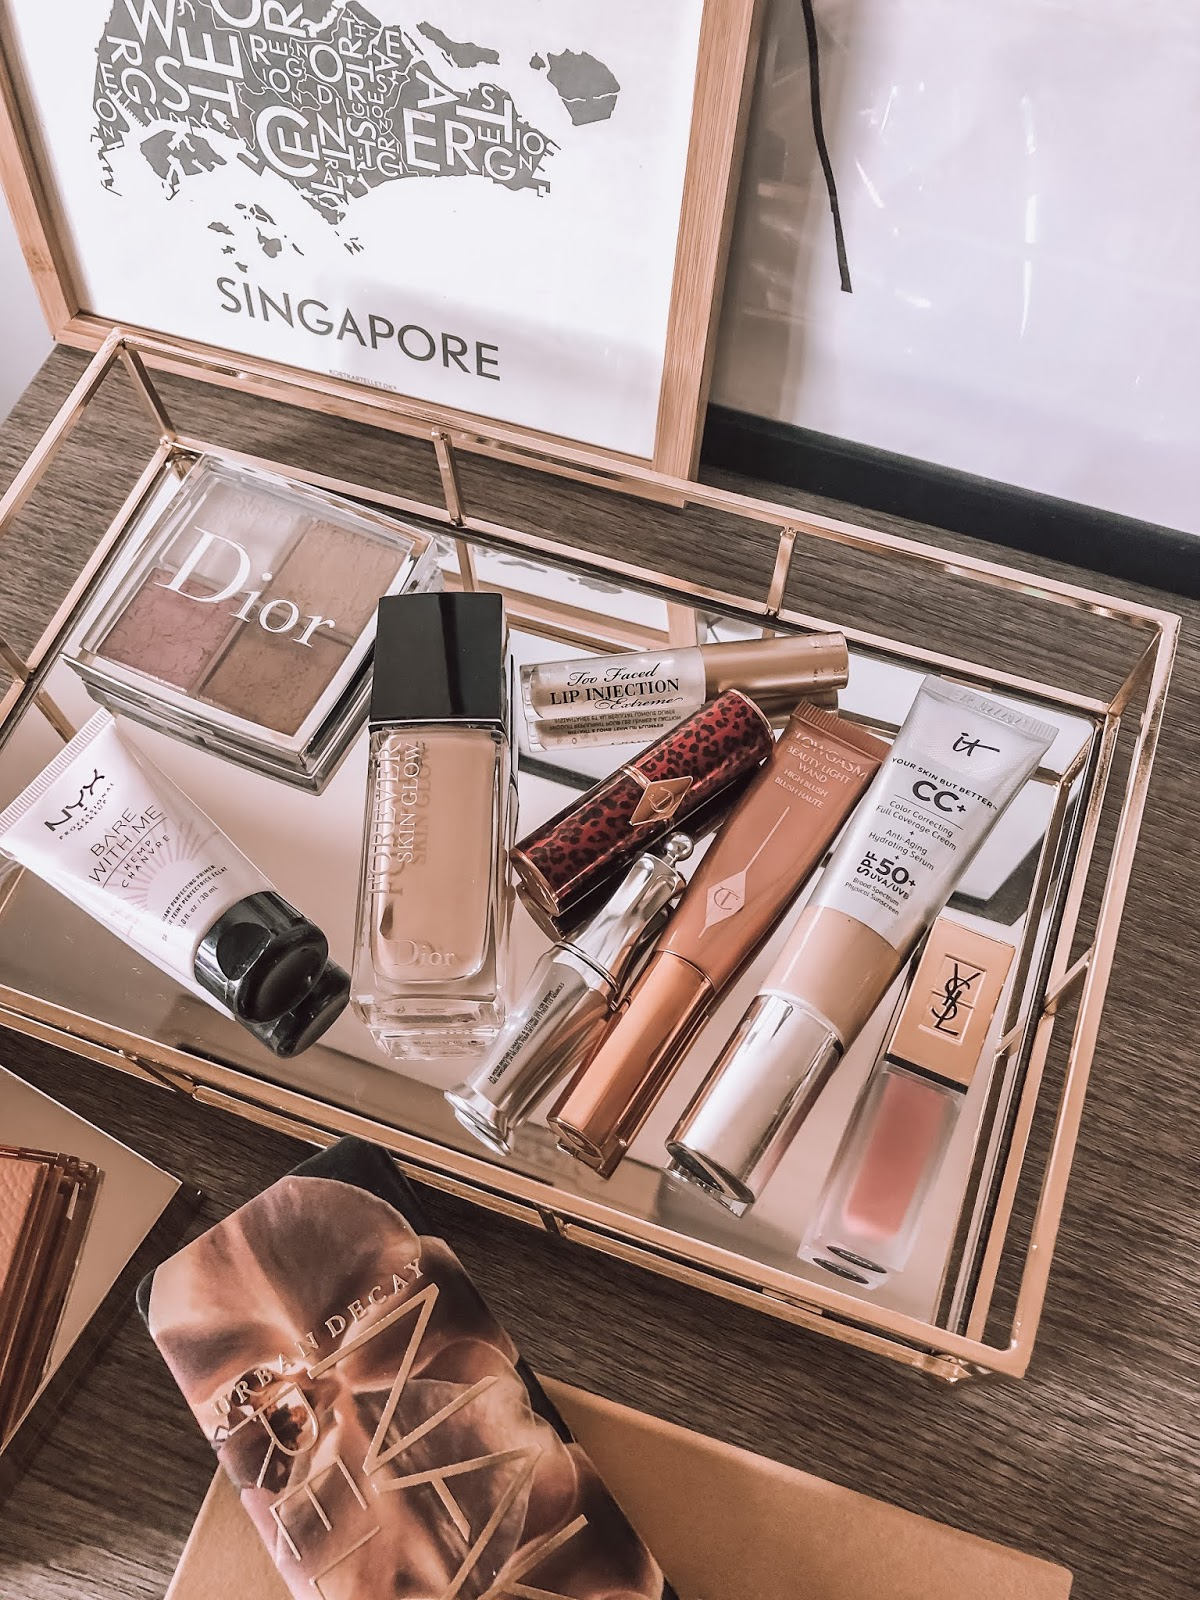 2019 beauty favorites, charlotte tilbury, dior, it cosmetics, abh, becca, huda,nyx